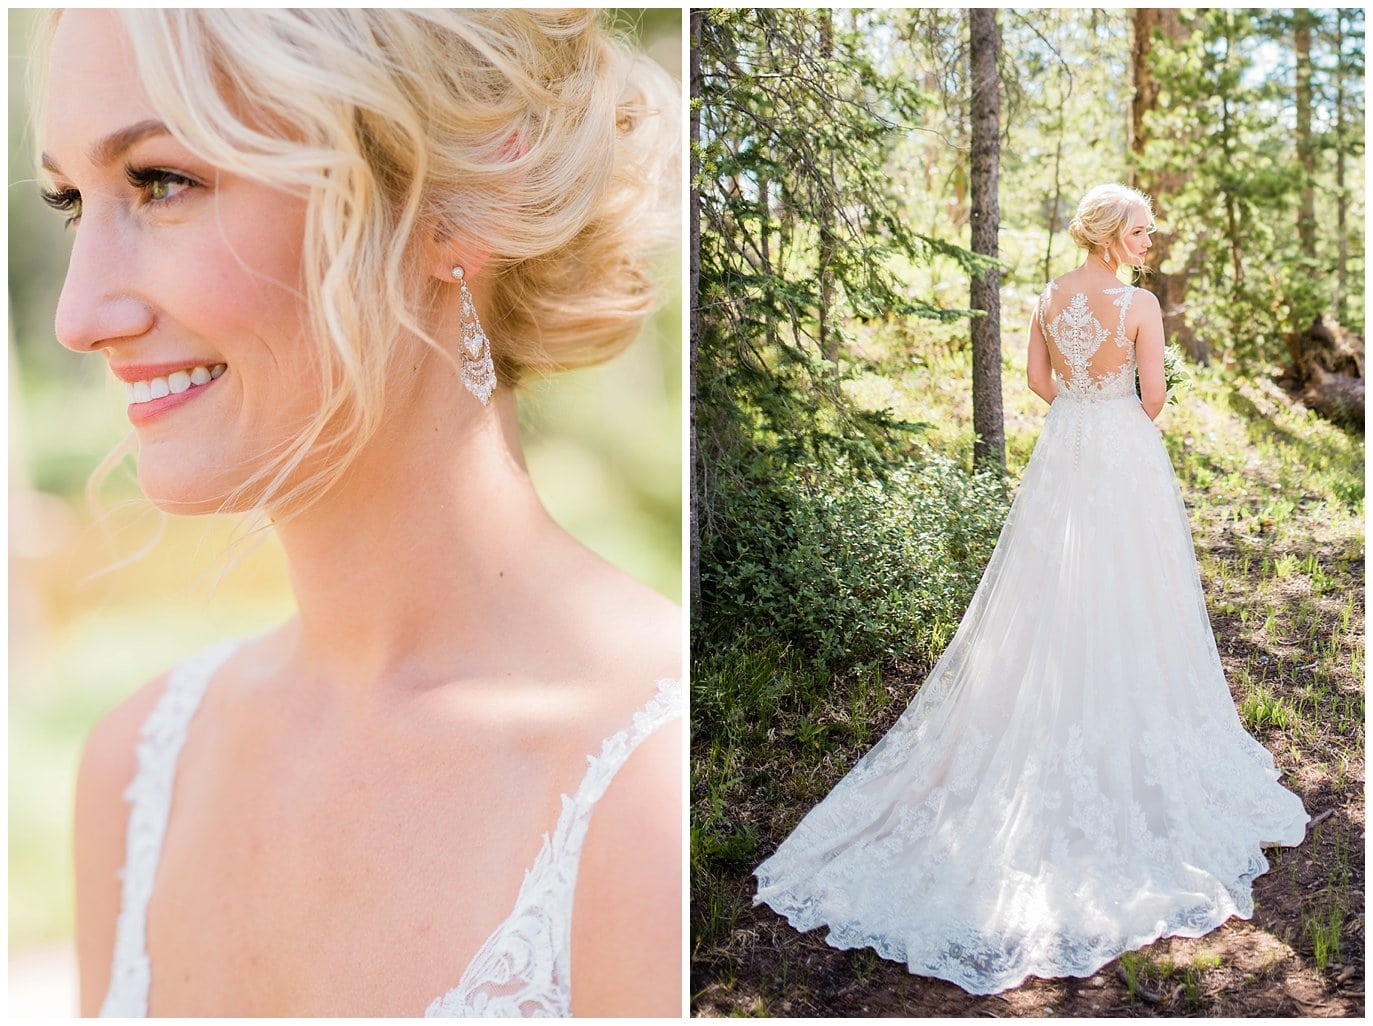 bride in lace dress with see through back and sparkly earrings at Piney River Ranch wedding by Beaver wedding photographer Jennie Crate, Photographer